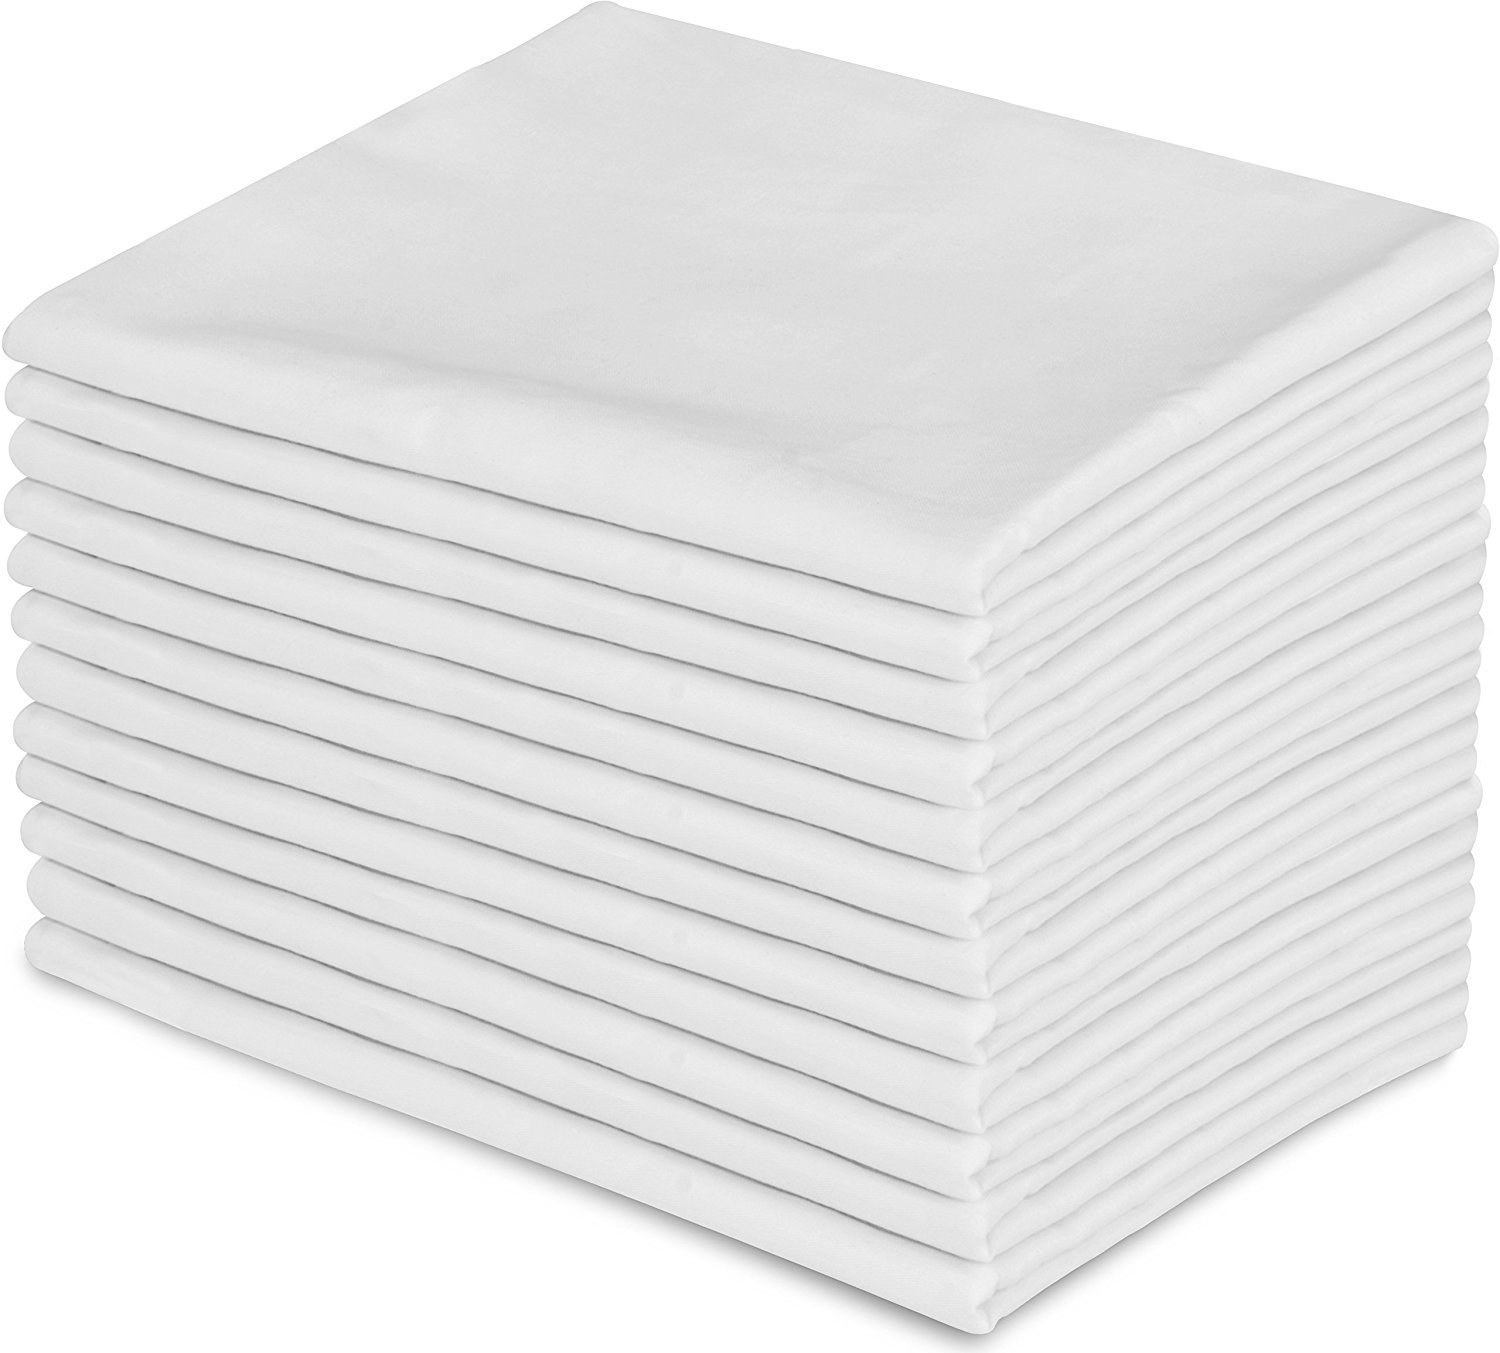 EOM Linens White XL Twin Size Flat Sheets Size 66'' X 115'' T-130 Thread Count (2 Pack) Great for Home, Salons, Spas, Hotel, Institutional & Hospital use.